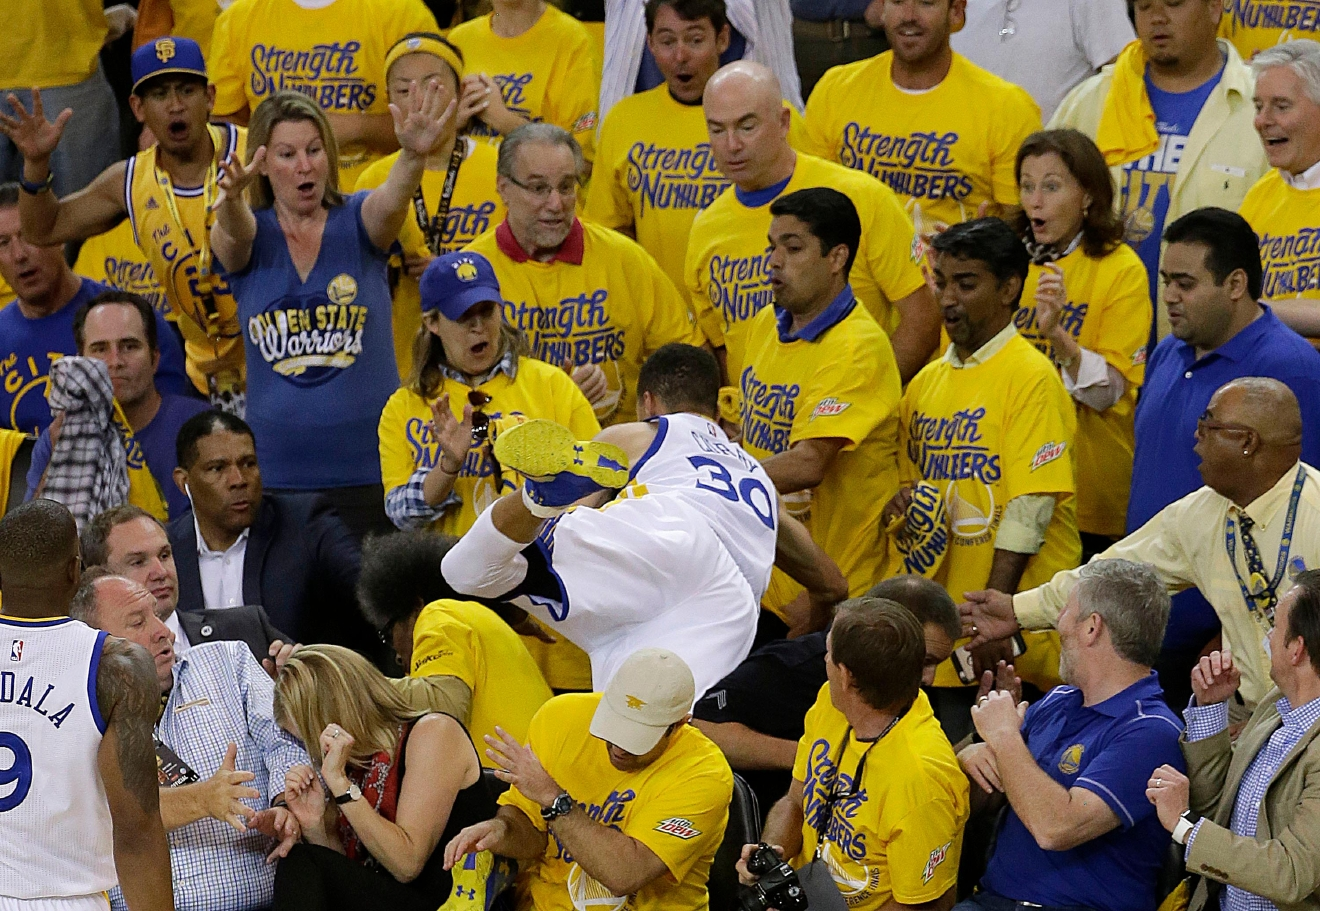 Golden State Warriors guard Stephen Curry (30) falls over a row of fans while chasing a loose ball during the first half of Game 2 of the NBA basketball Western Conference finals against the Oklahoma City Thunder in Oakland, Calif., Wednesday, May 18, 2016. (AP Photo/Jeff Chiu)